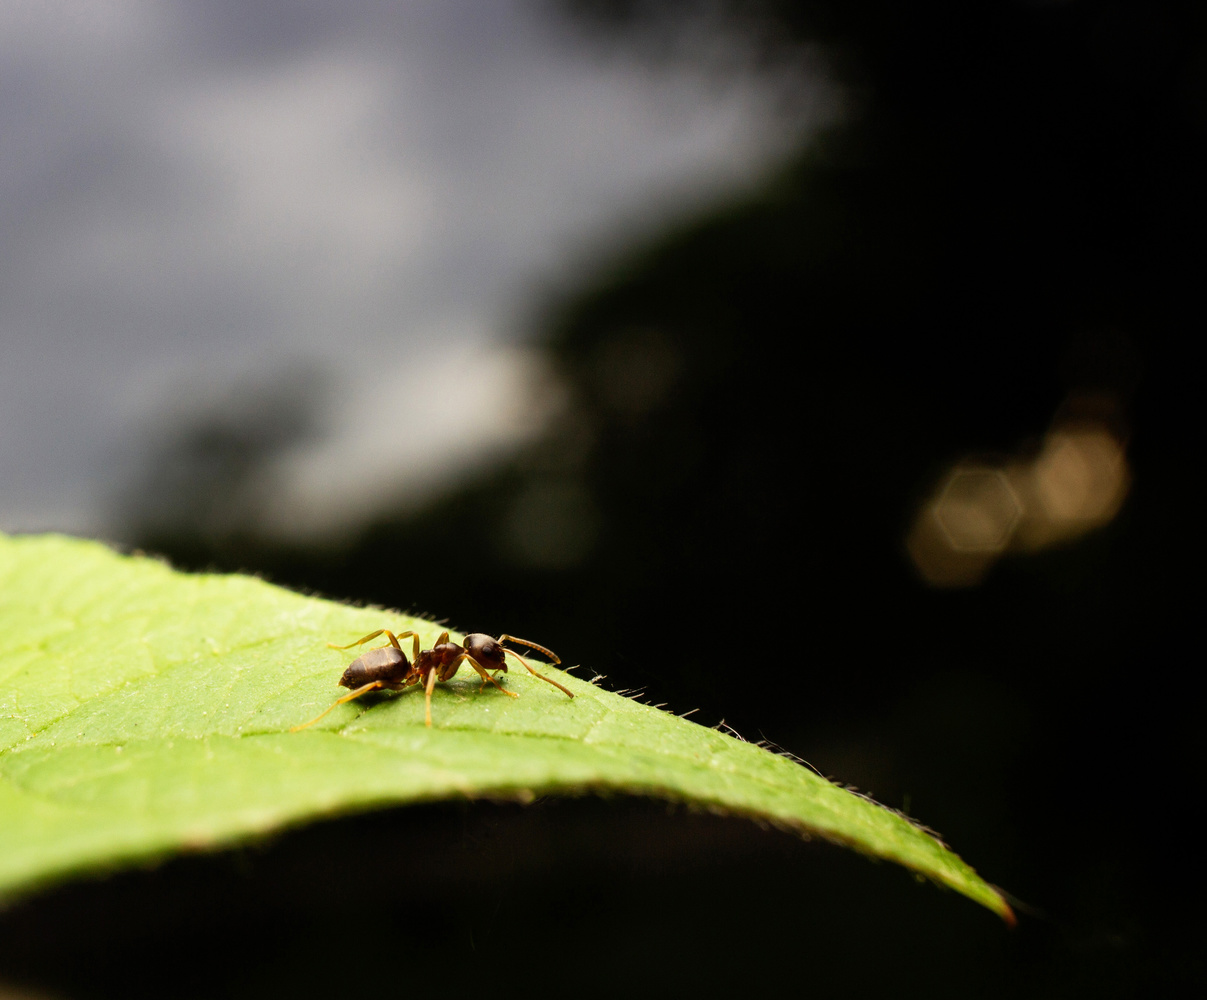 Ant on a Leaf by Robert Felker